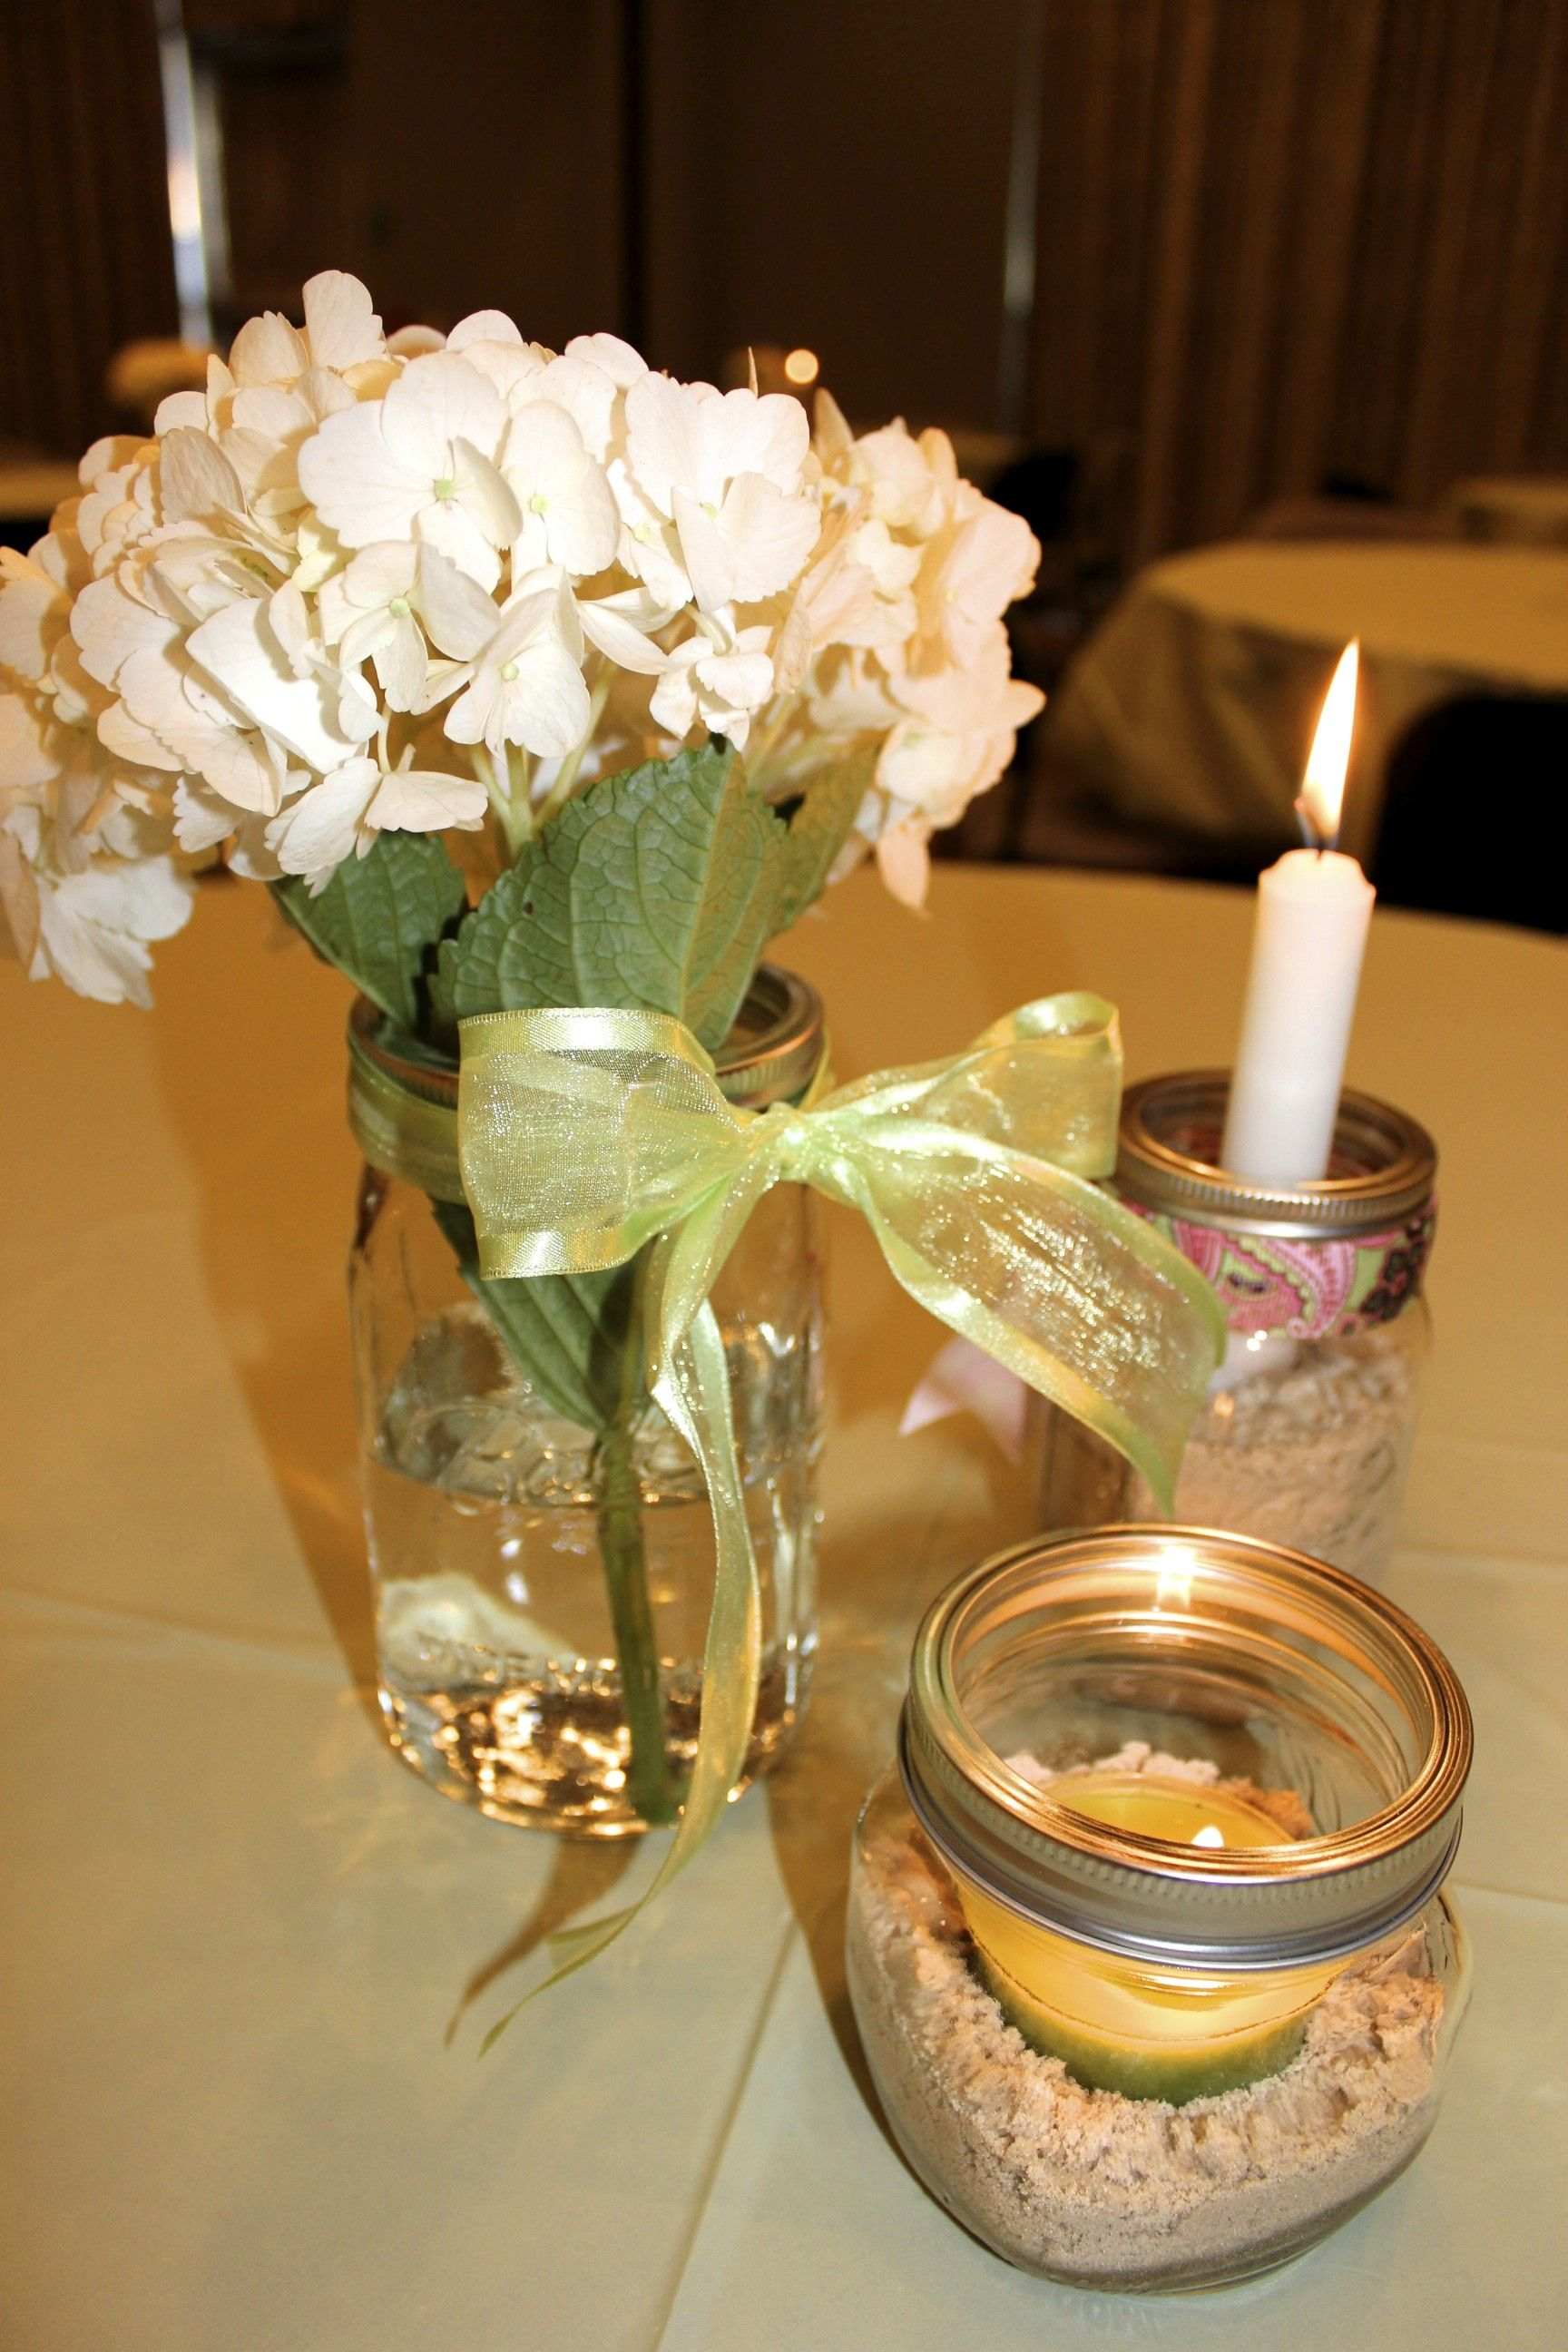 Simple elegant party decorations for adults centerpieces